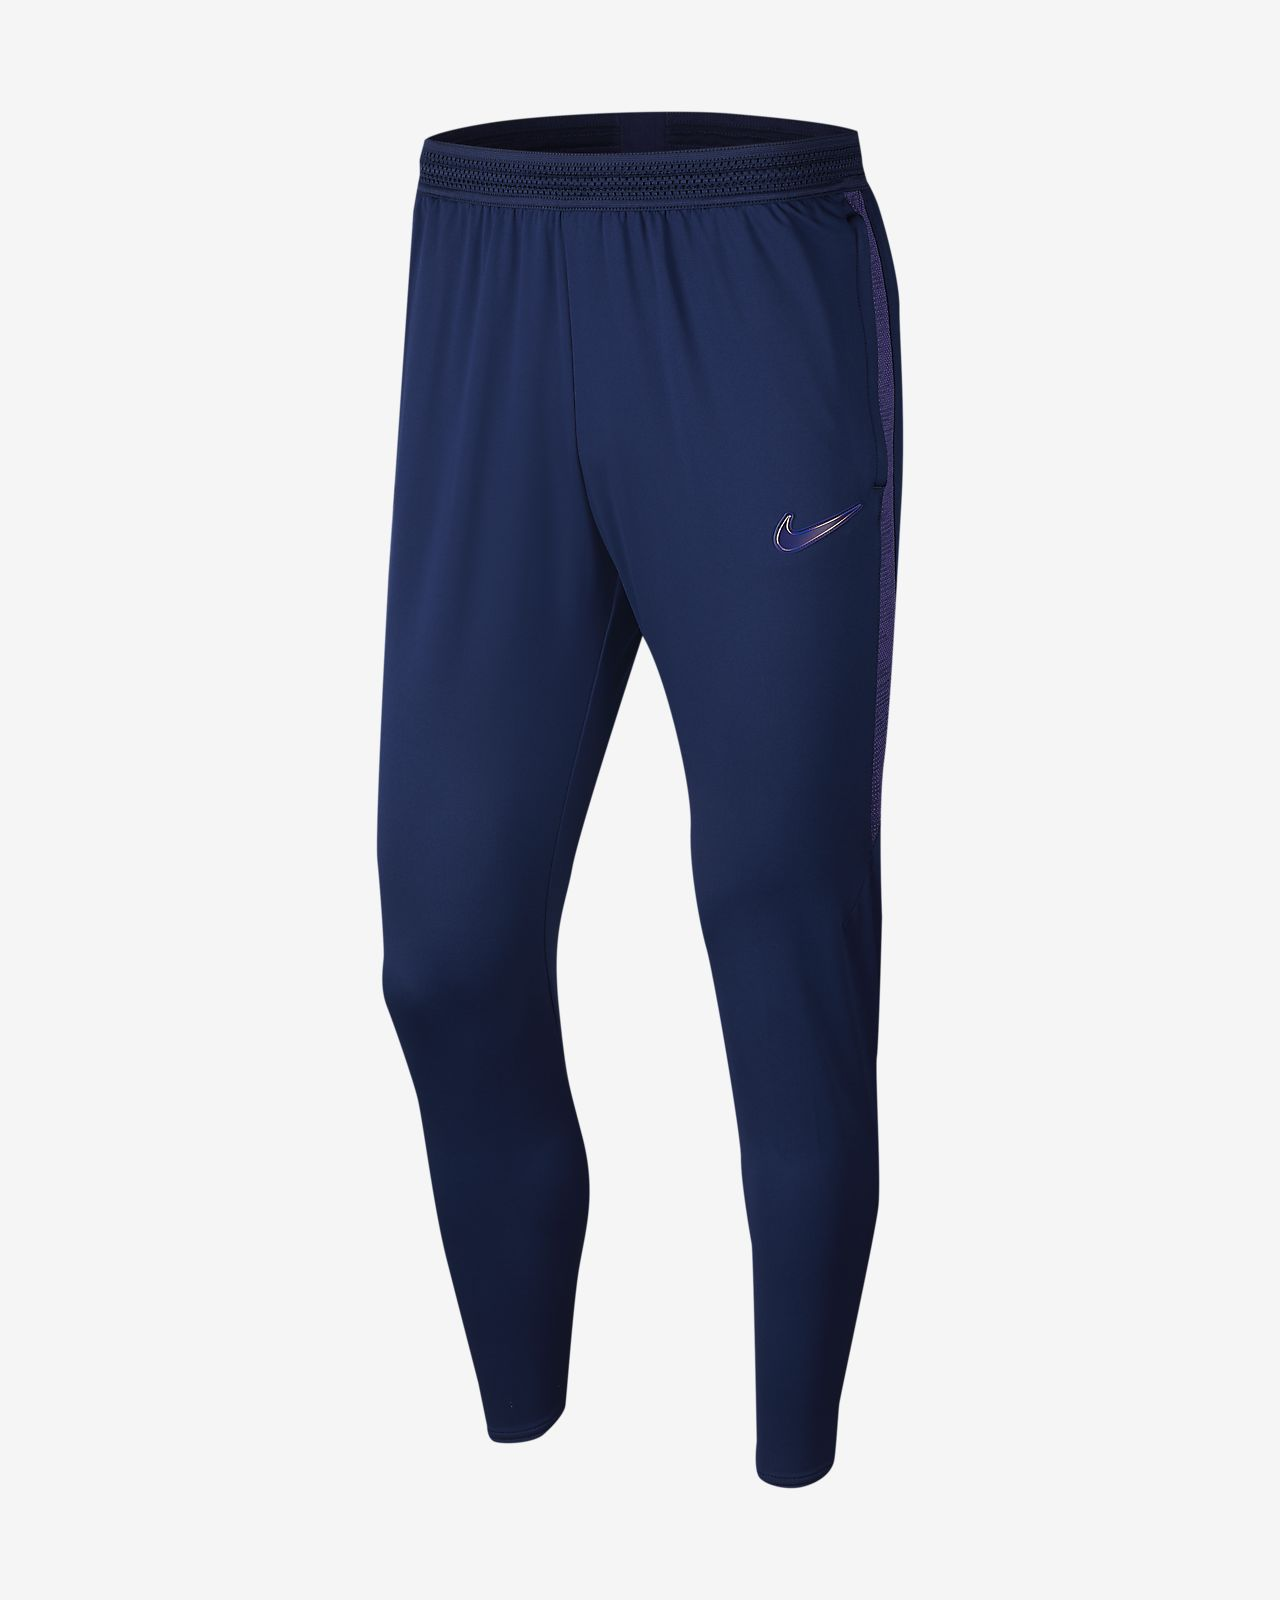 Nike Dri-FIT Tottenham Hotspur Strike Men's Football Pants